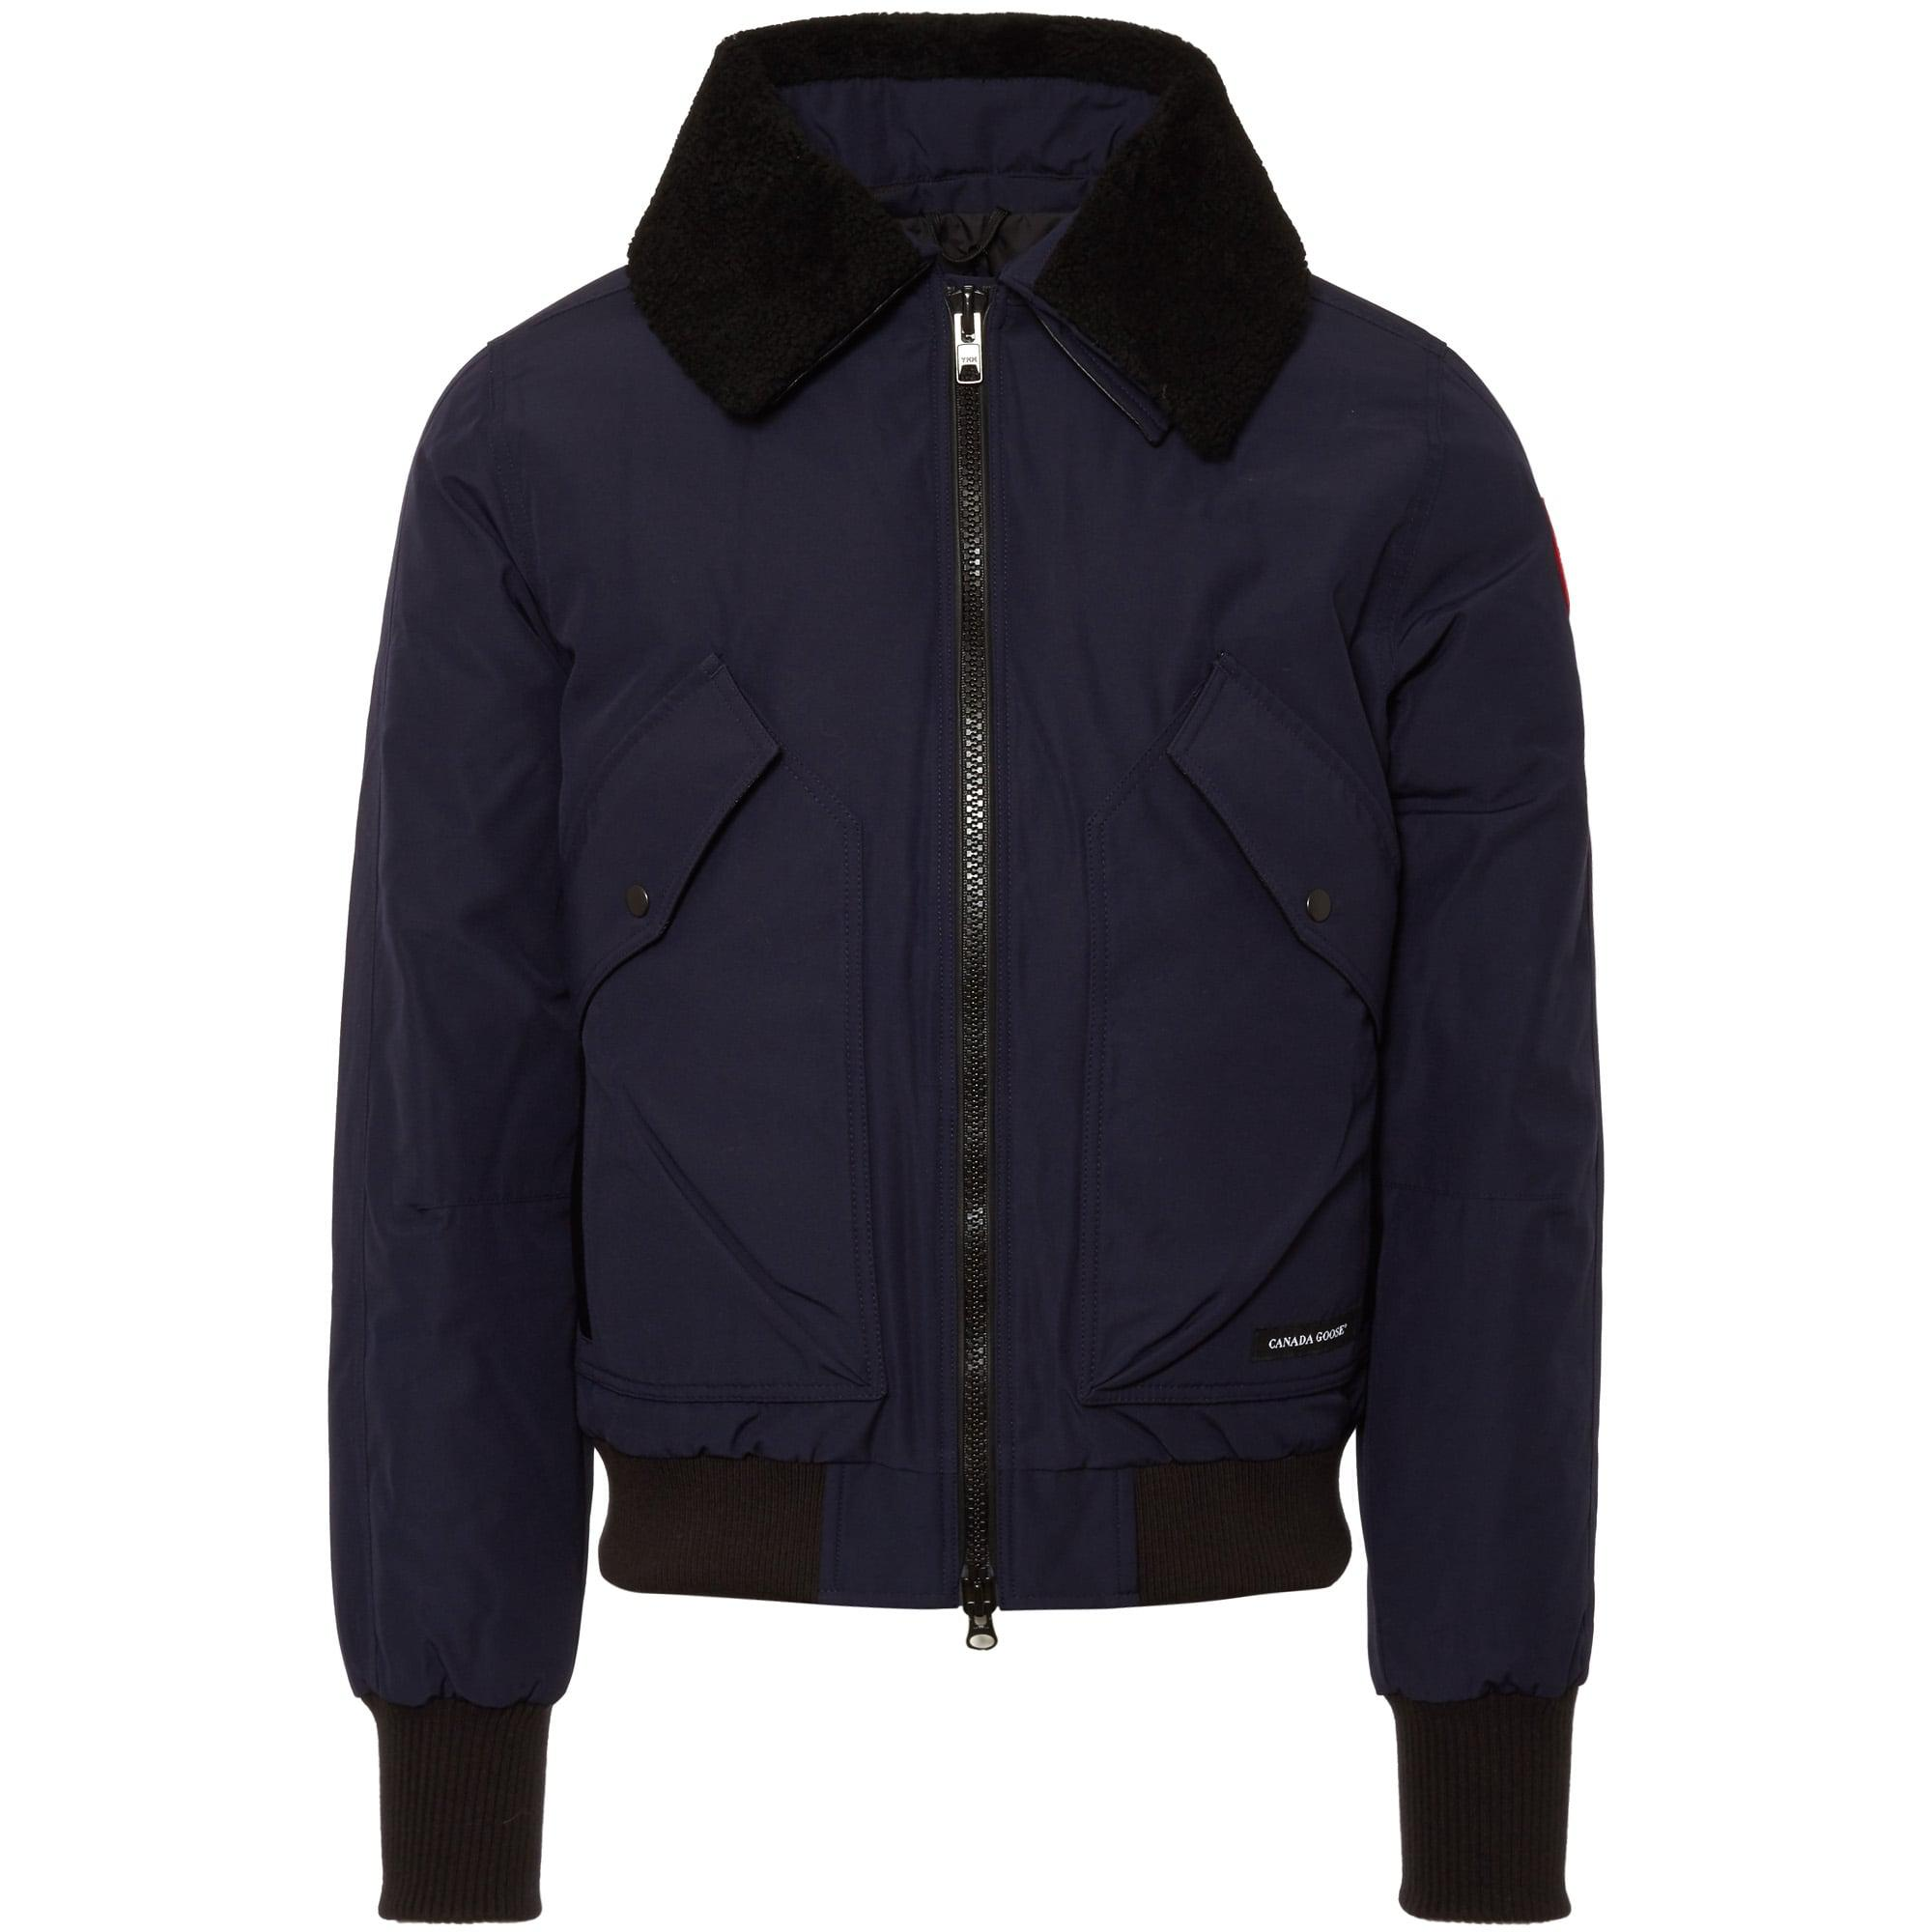 Lyst - Canada goose Bromley Bomber Jacket in Blue for Men